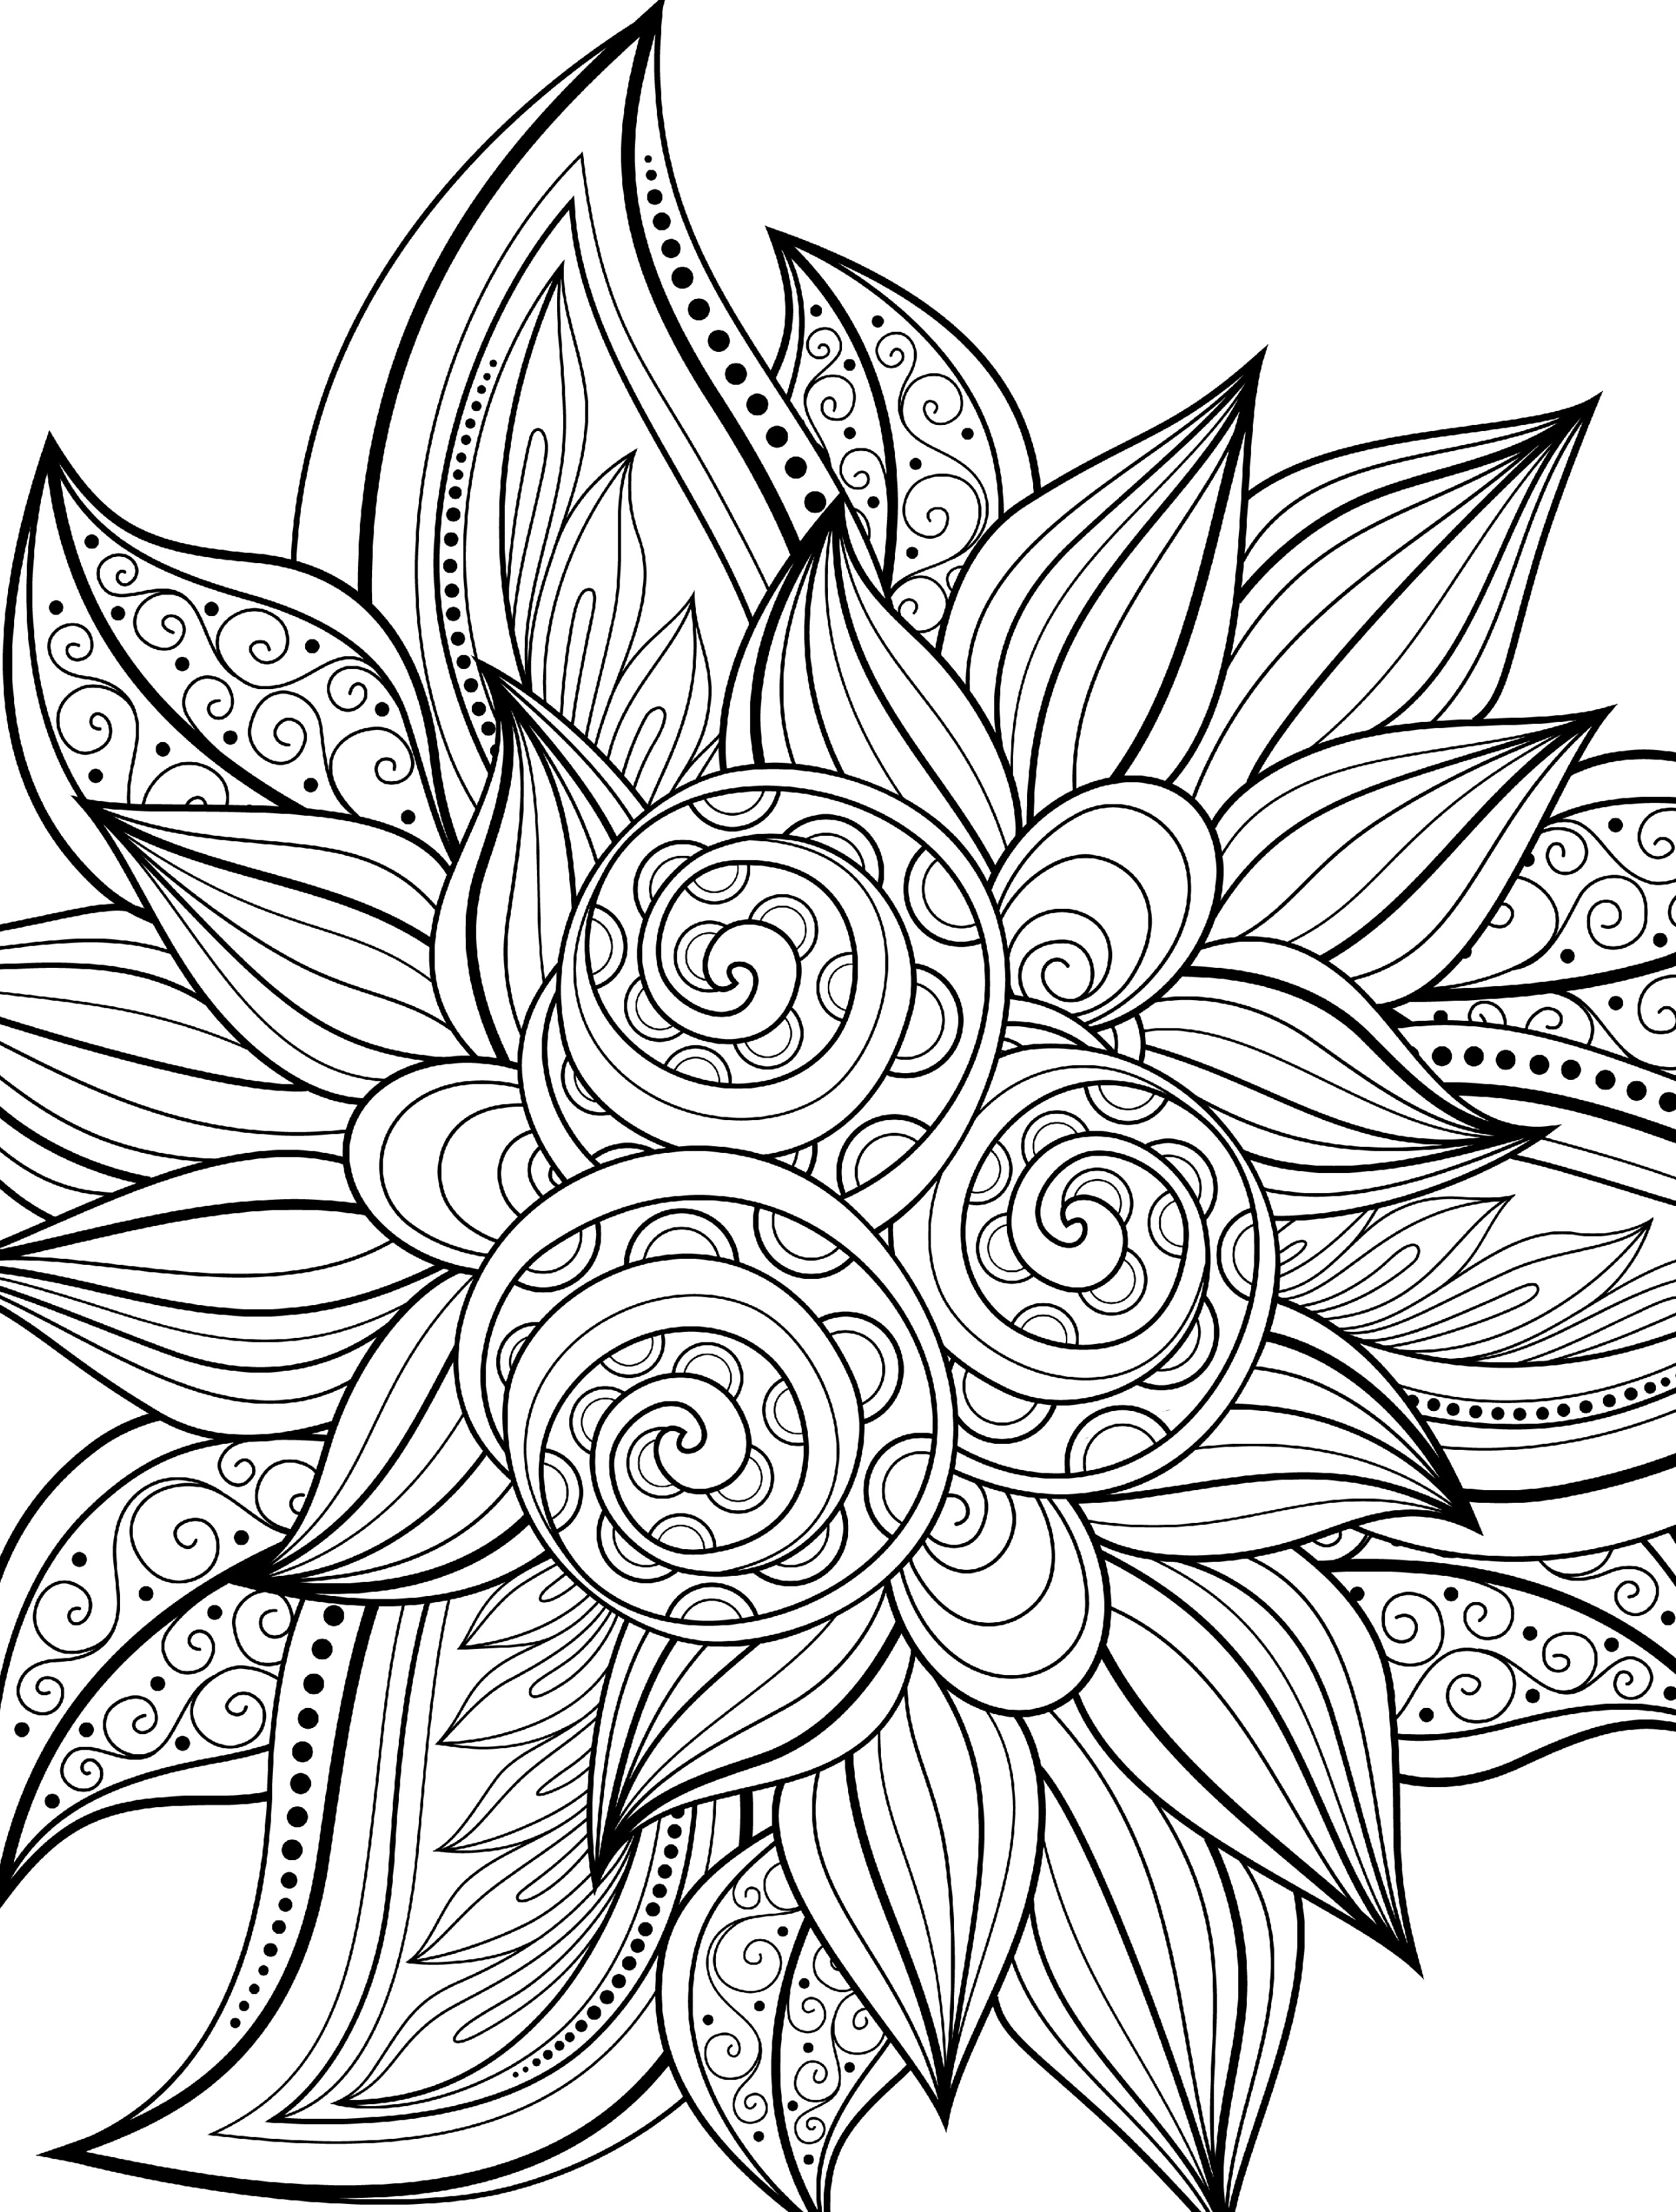 Coloring Pages For Kids 10 And Up